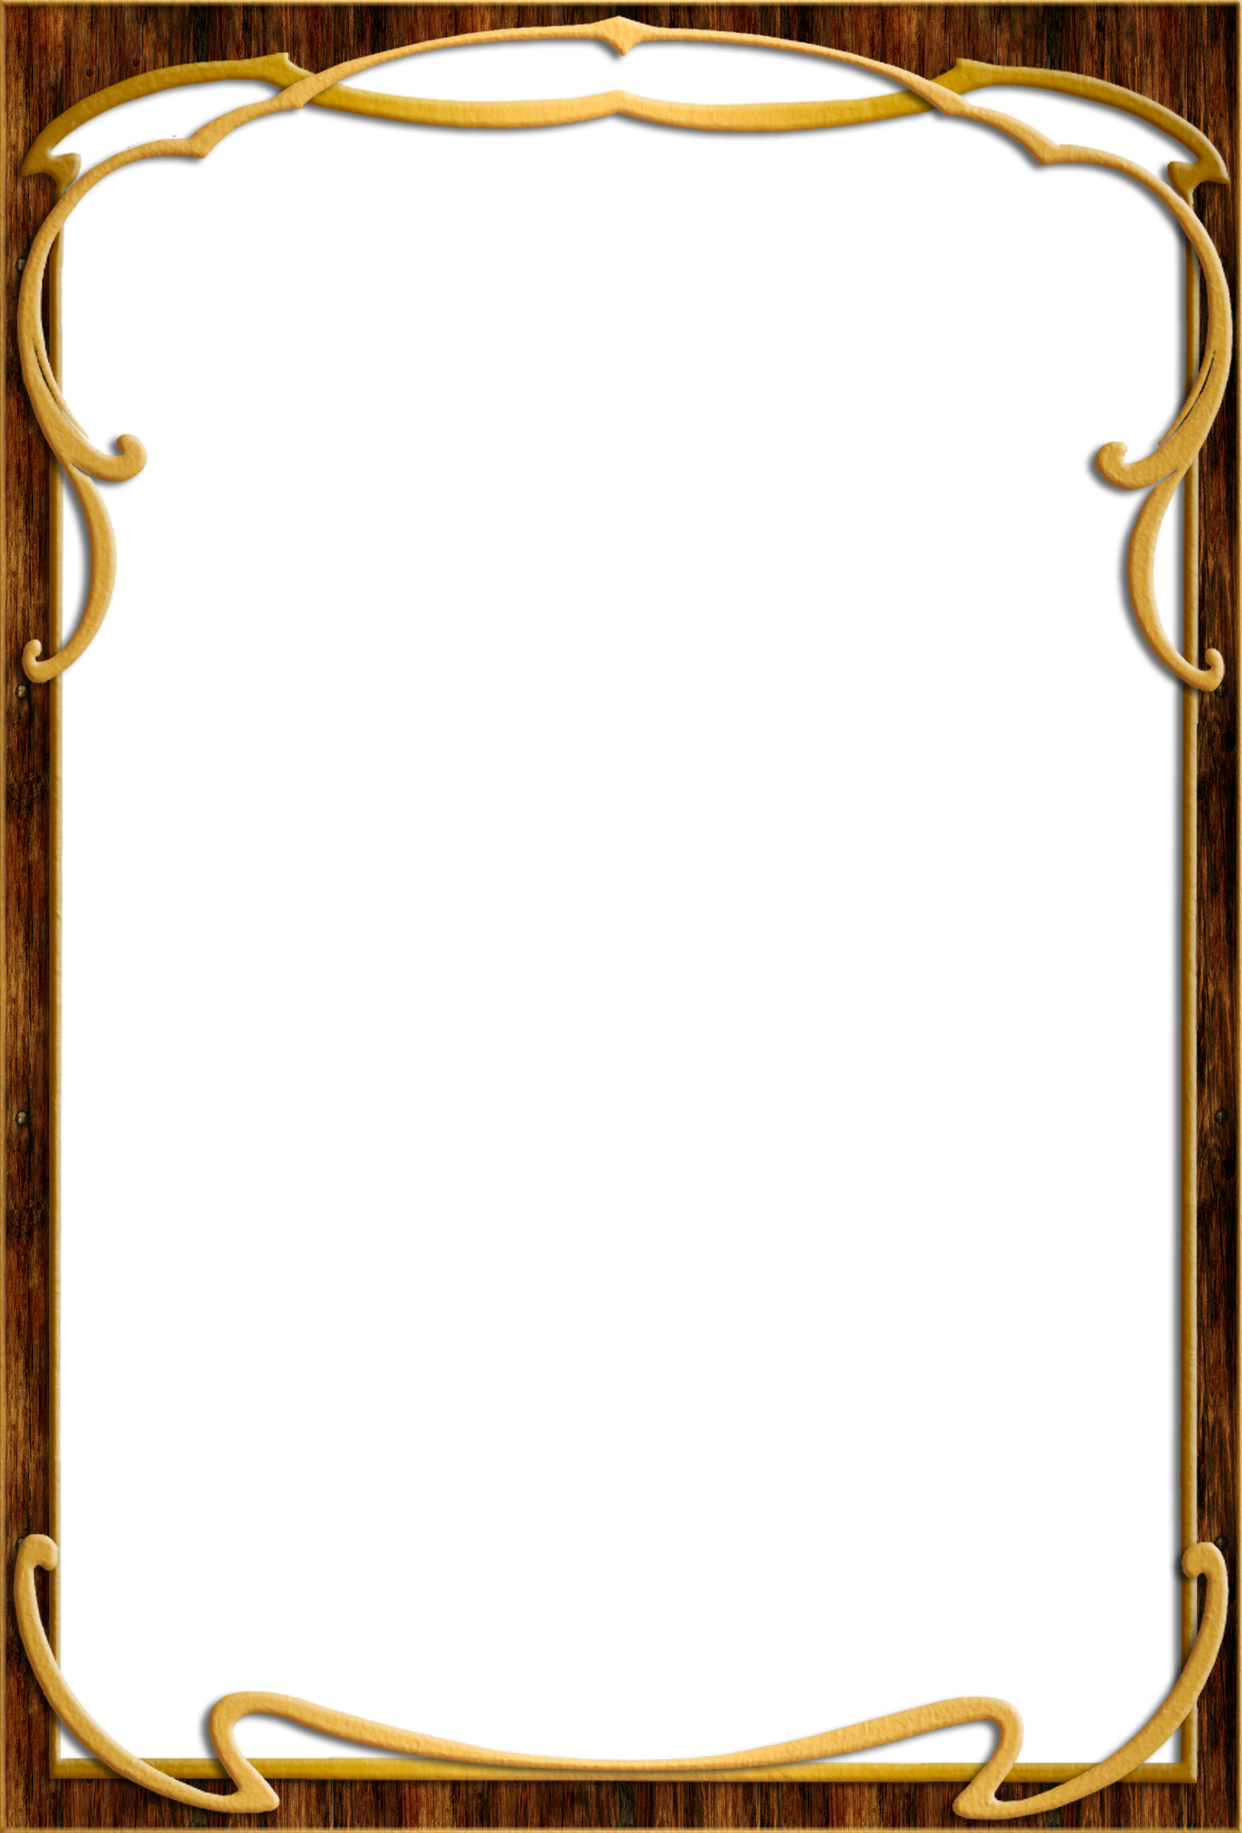 Png photo frame download. Wood images free